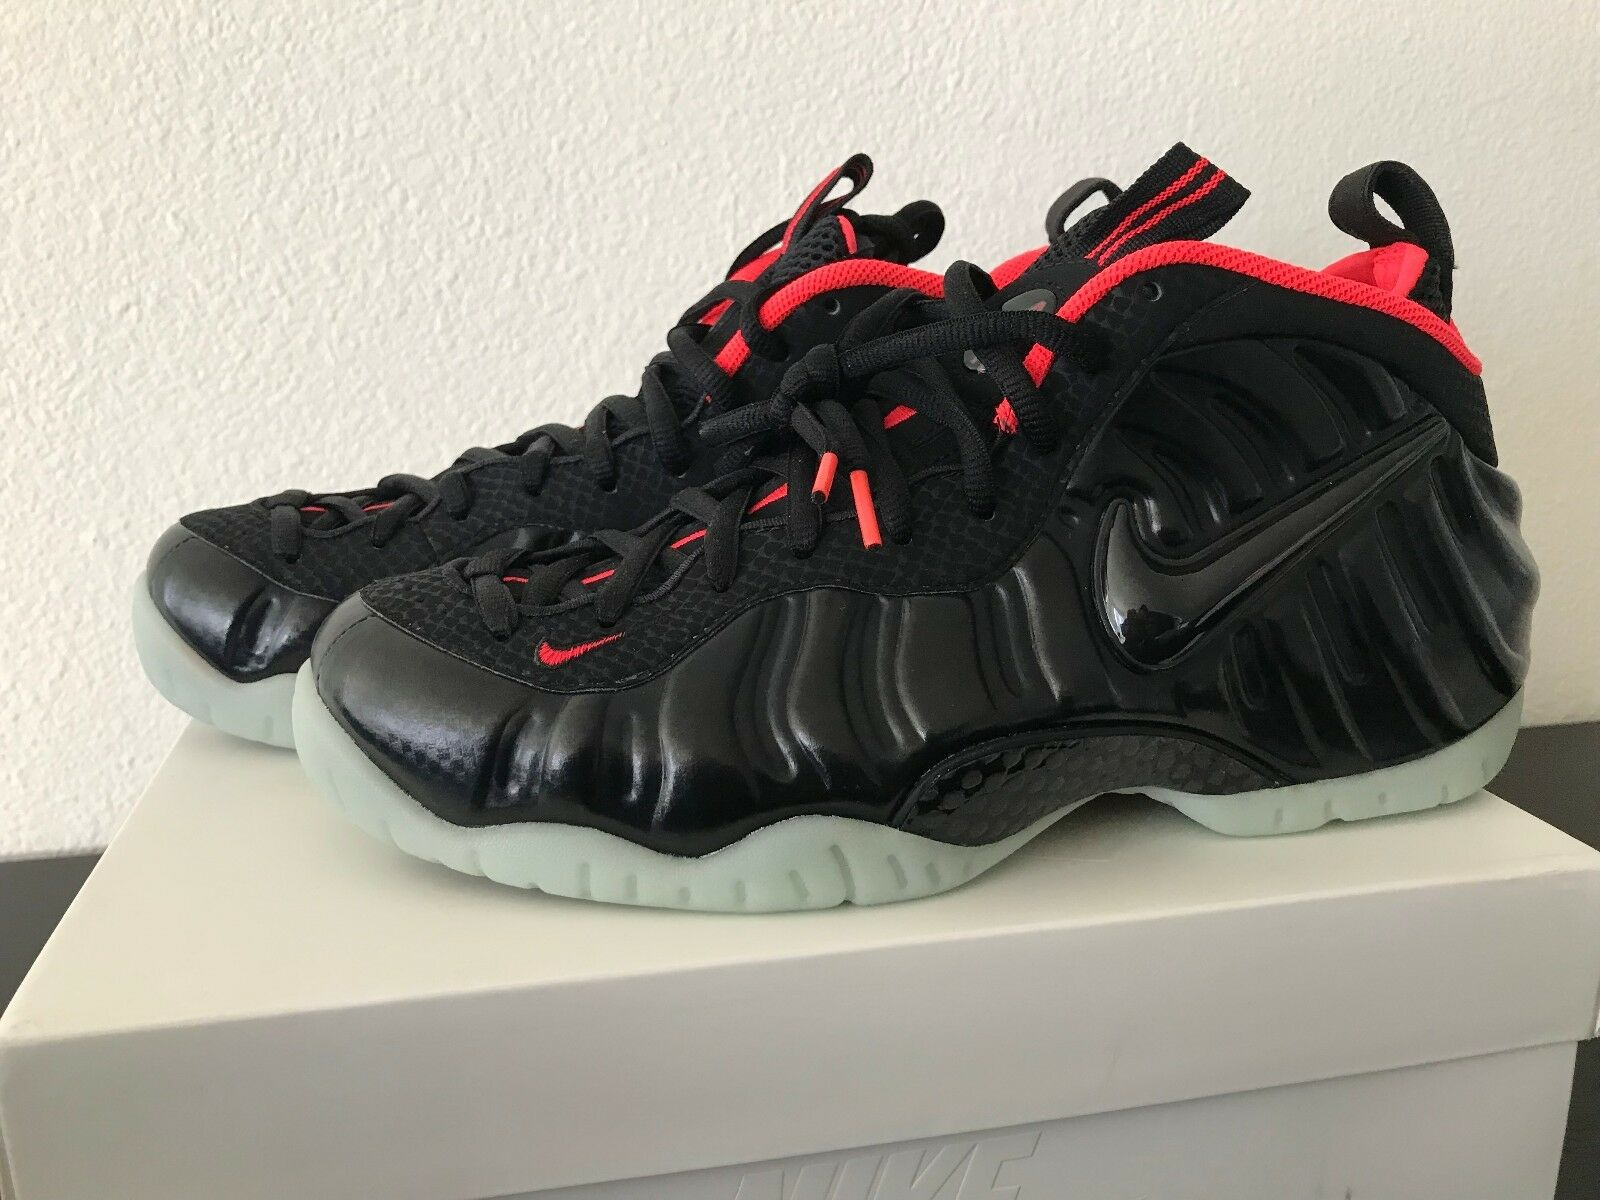 Nike Air Foamposite Yeezy Size 11